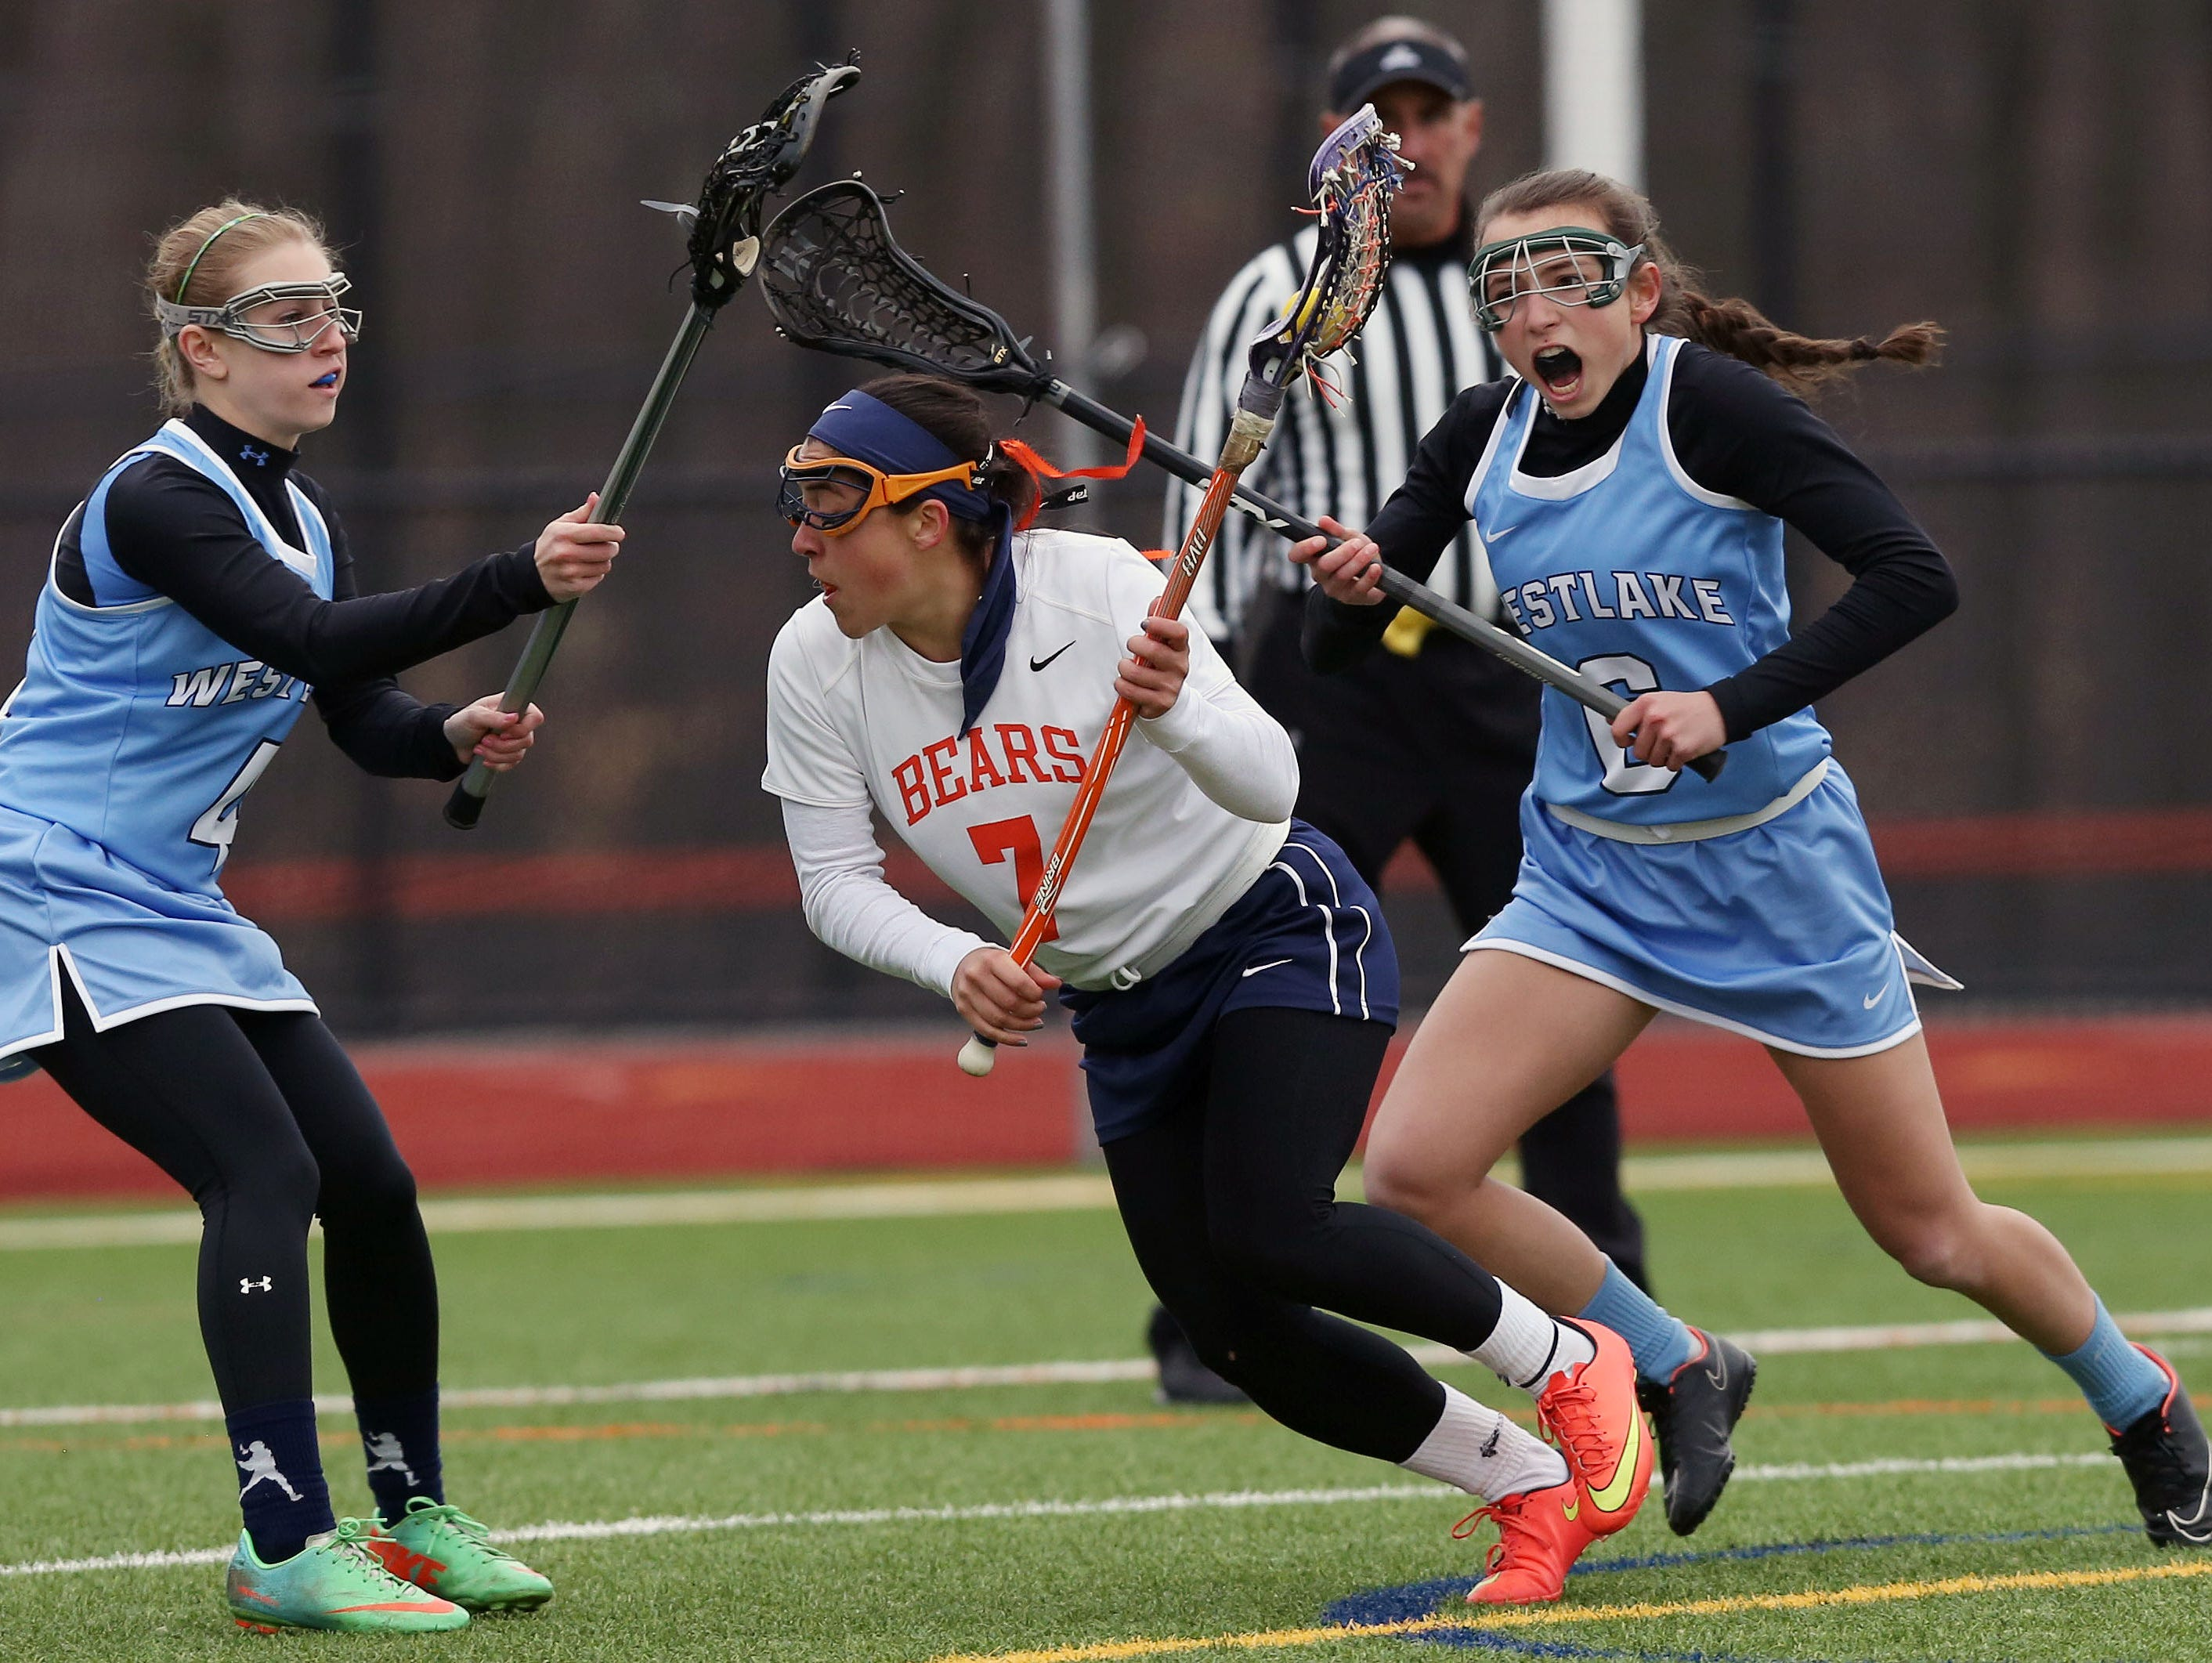 Briarcliff's Lexi Grasso (7) gets between Westlake's Ariella Ruggiero (4) and Allie Falkenberg (6) during first half action in the championship game of the Mt. Pleasant Cup girls lacrosse tournament at Briarcliff High School March 24, 2016. Briarcliff won the game 15-9.